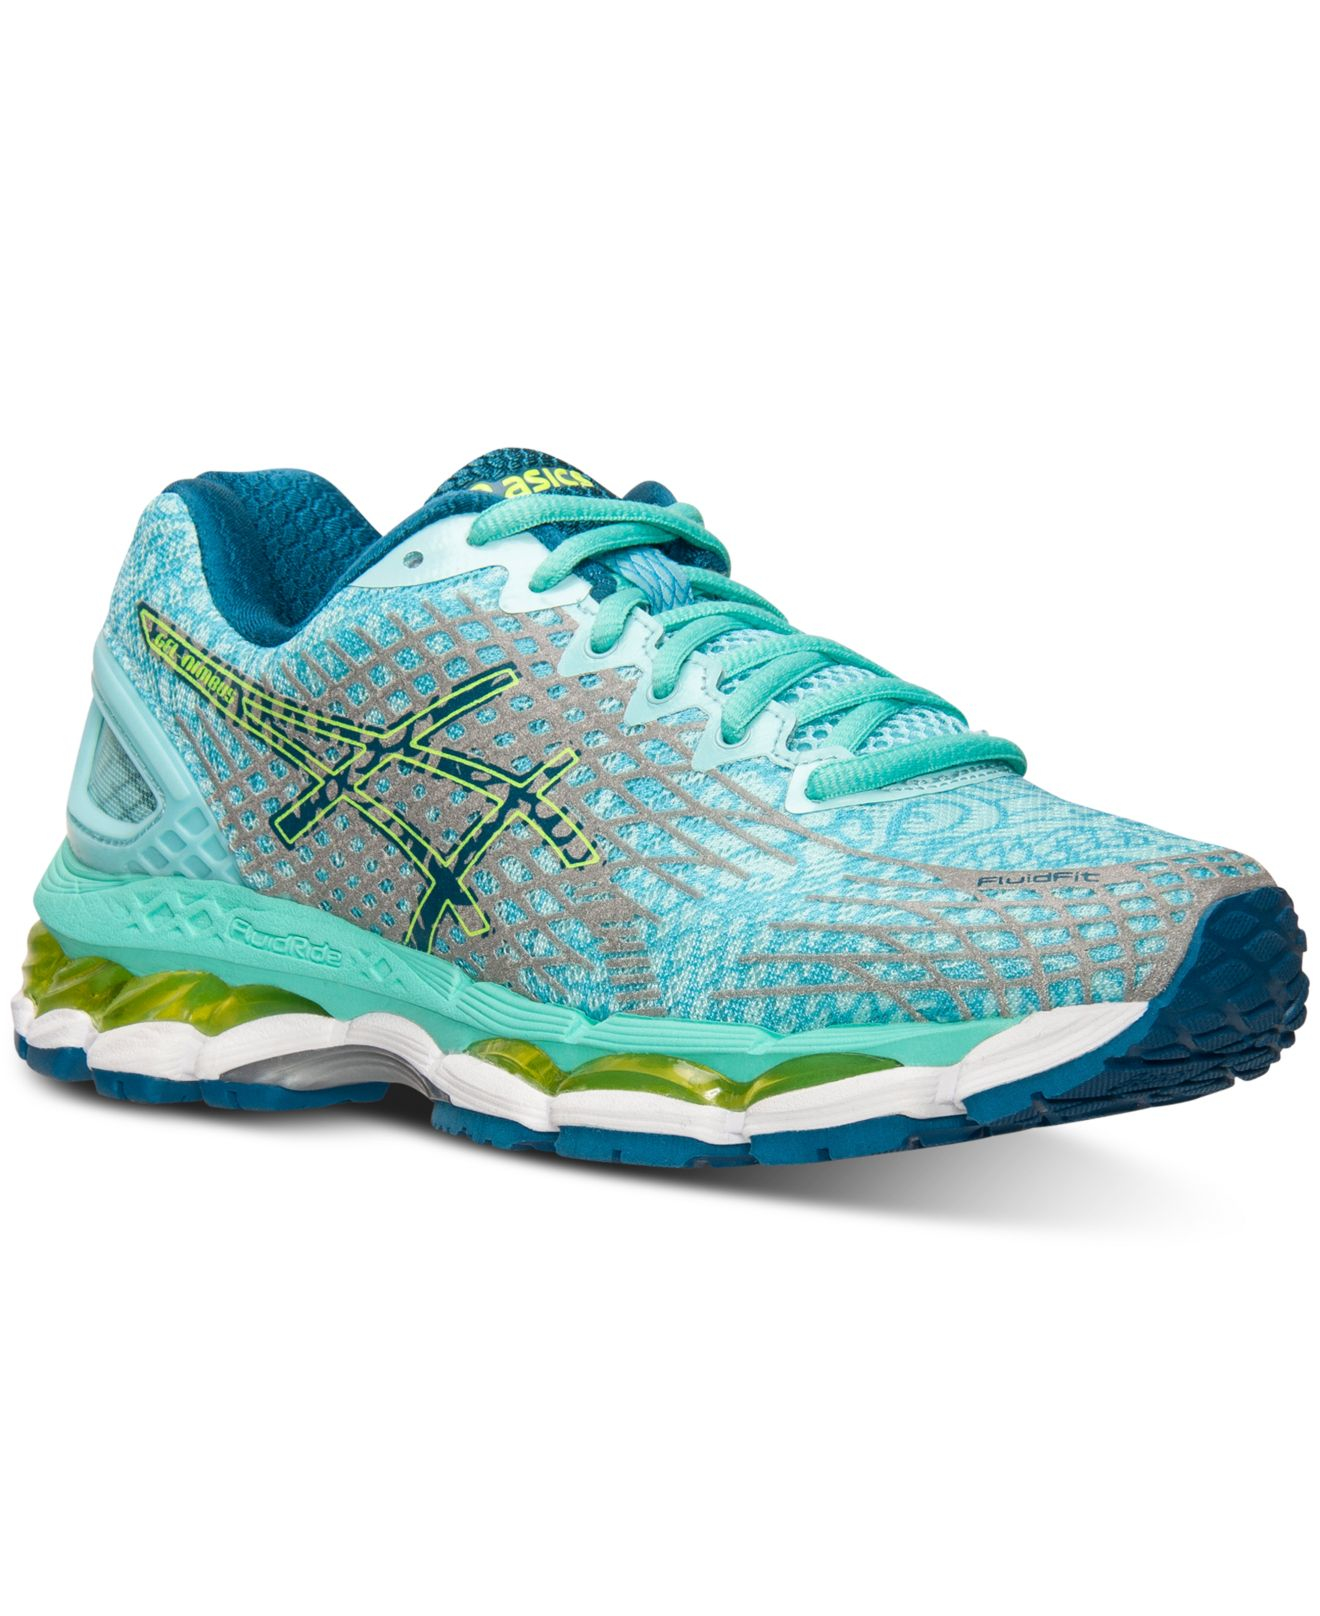 b7c788dadcc Lyst - Asics Women s Gel-nimbus 17 Lite Show Running Sneakers From ...